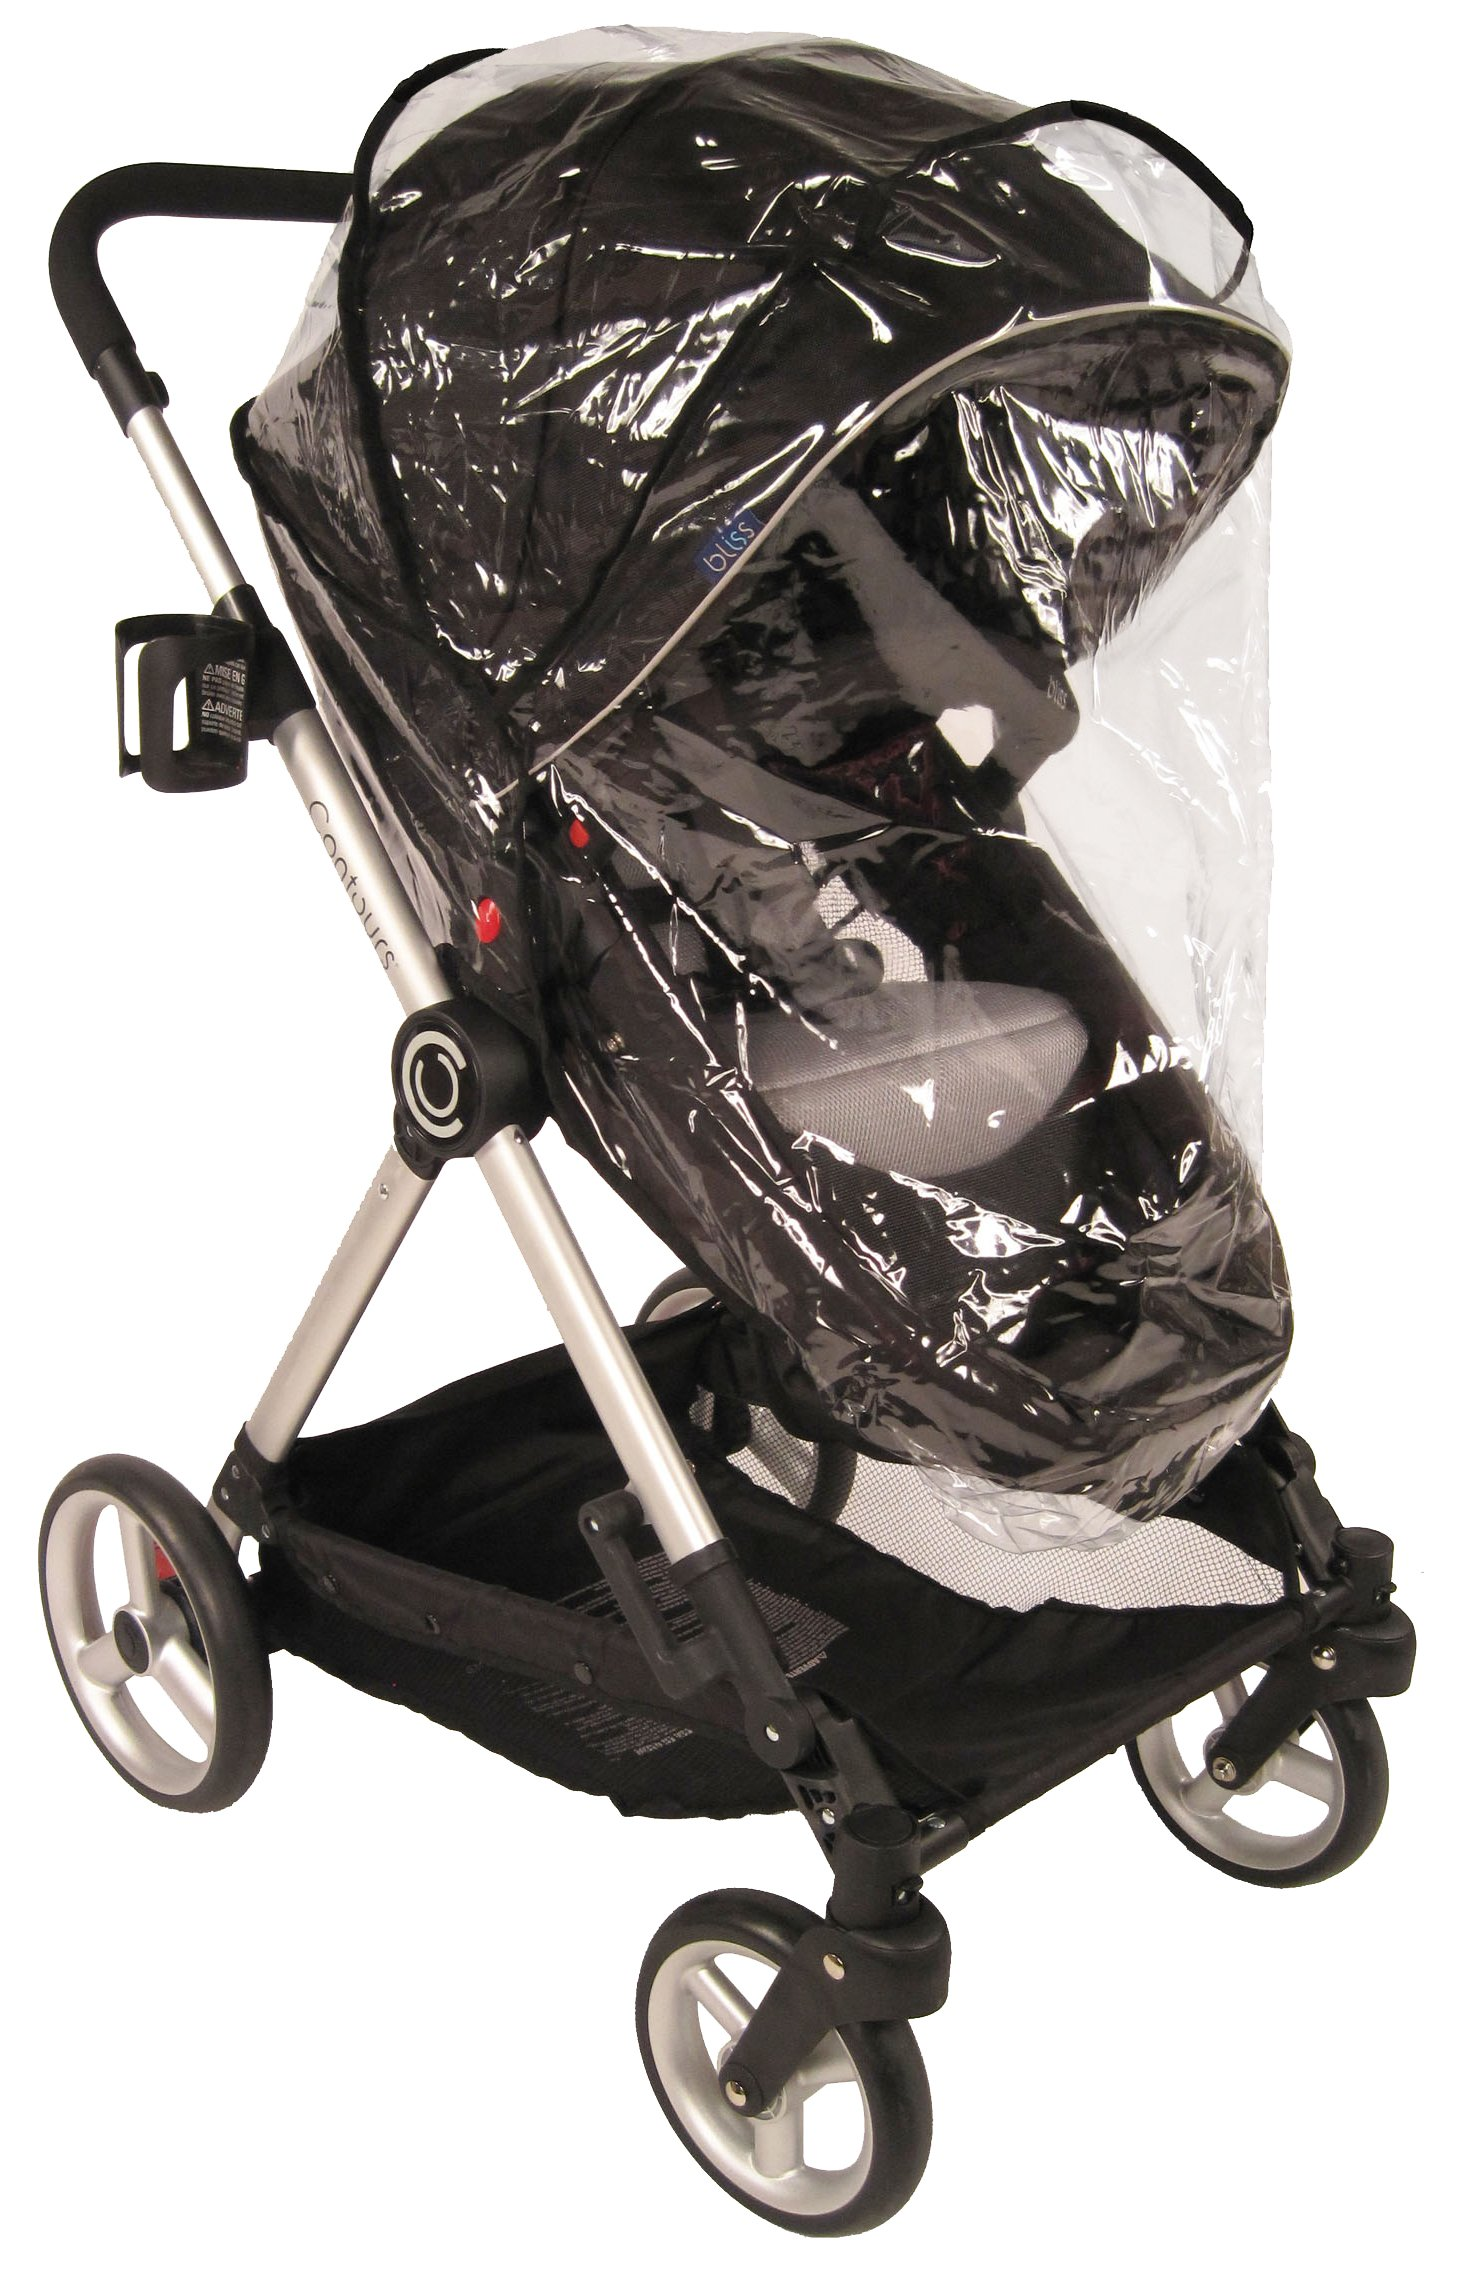 Contours Weather Shield for Contours Single and Double Strollers patible with Contours Bliss Options